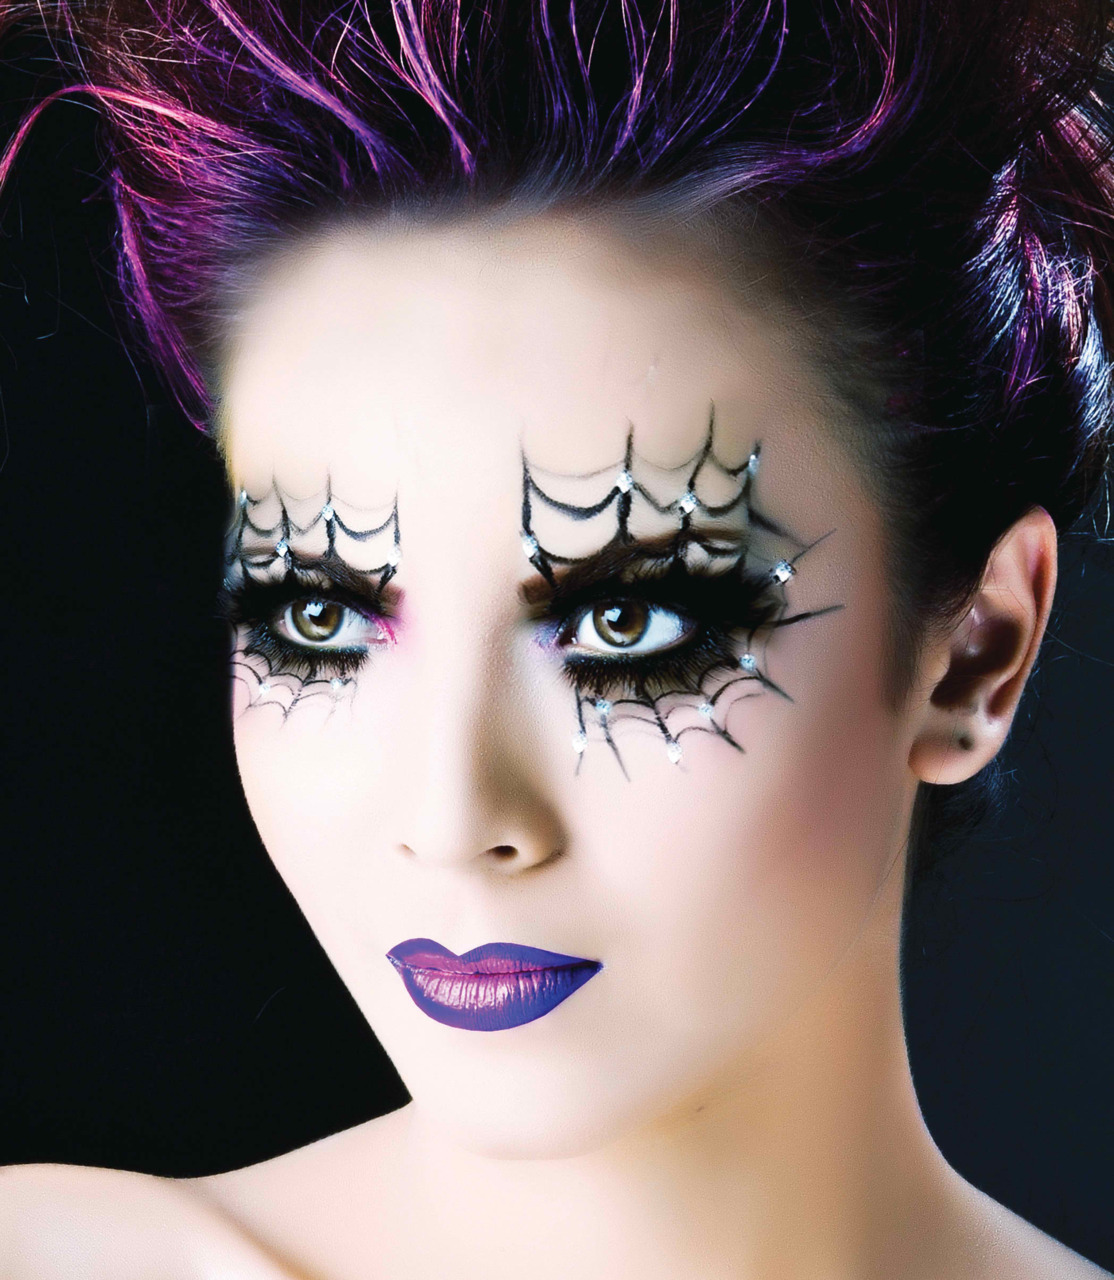 Girl with halloween makeup with cobwebs on her eyes